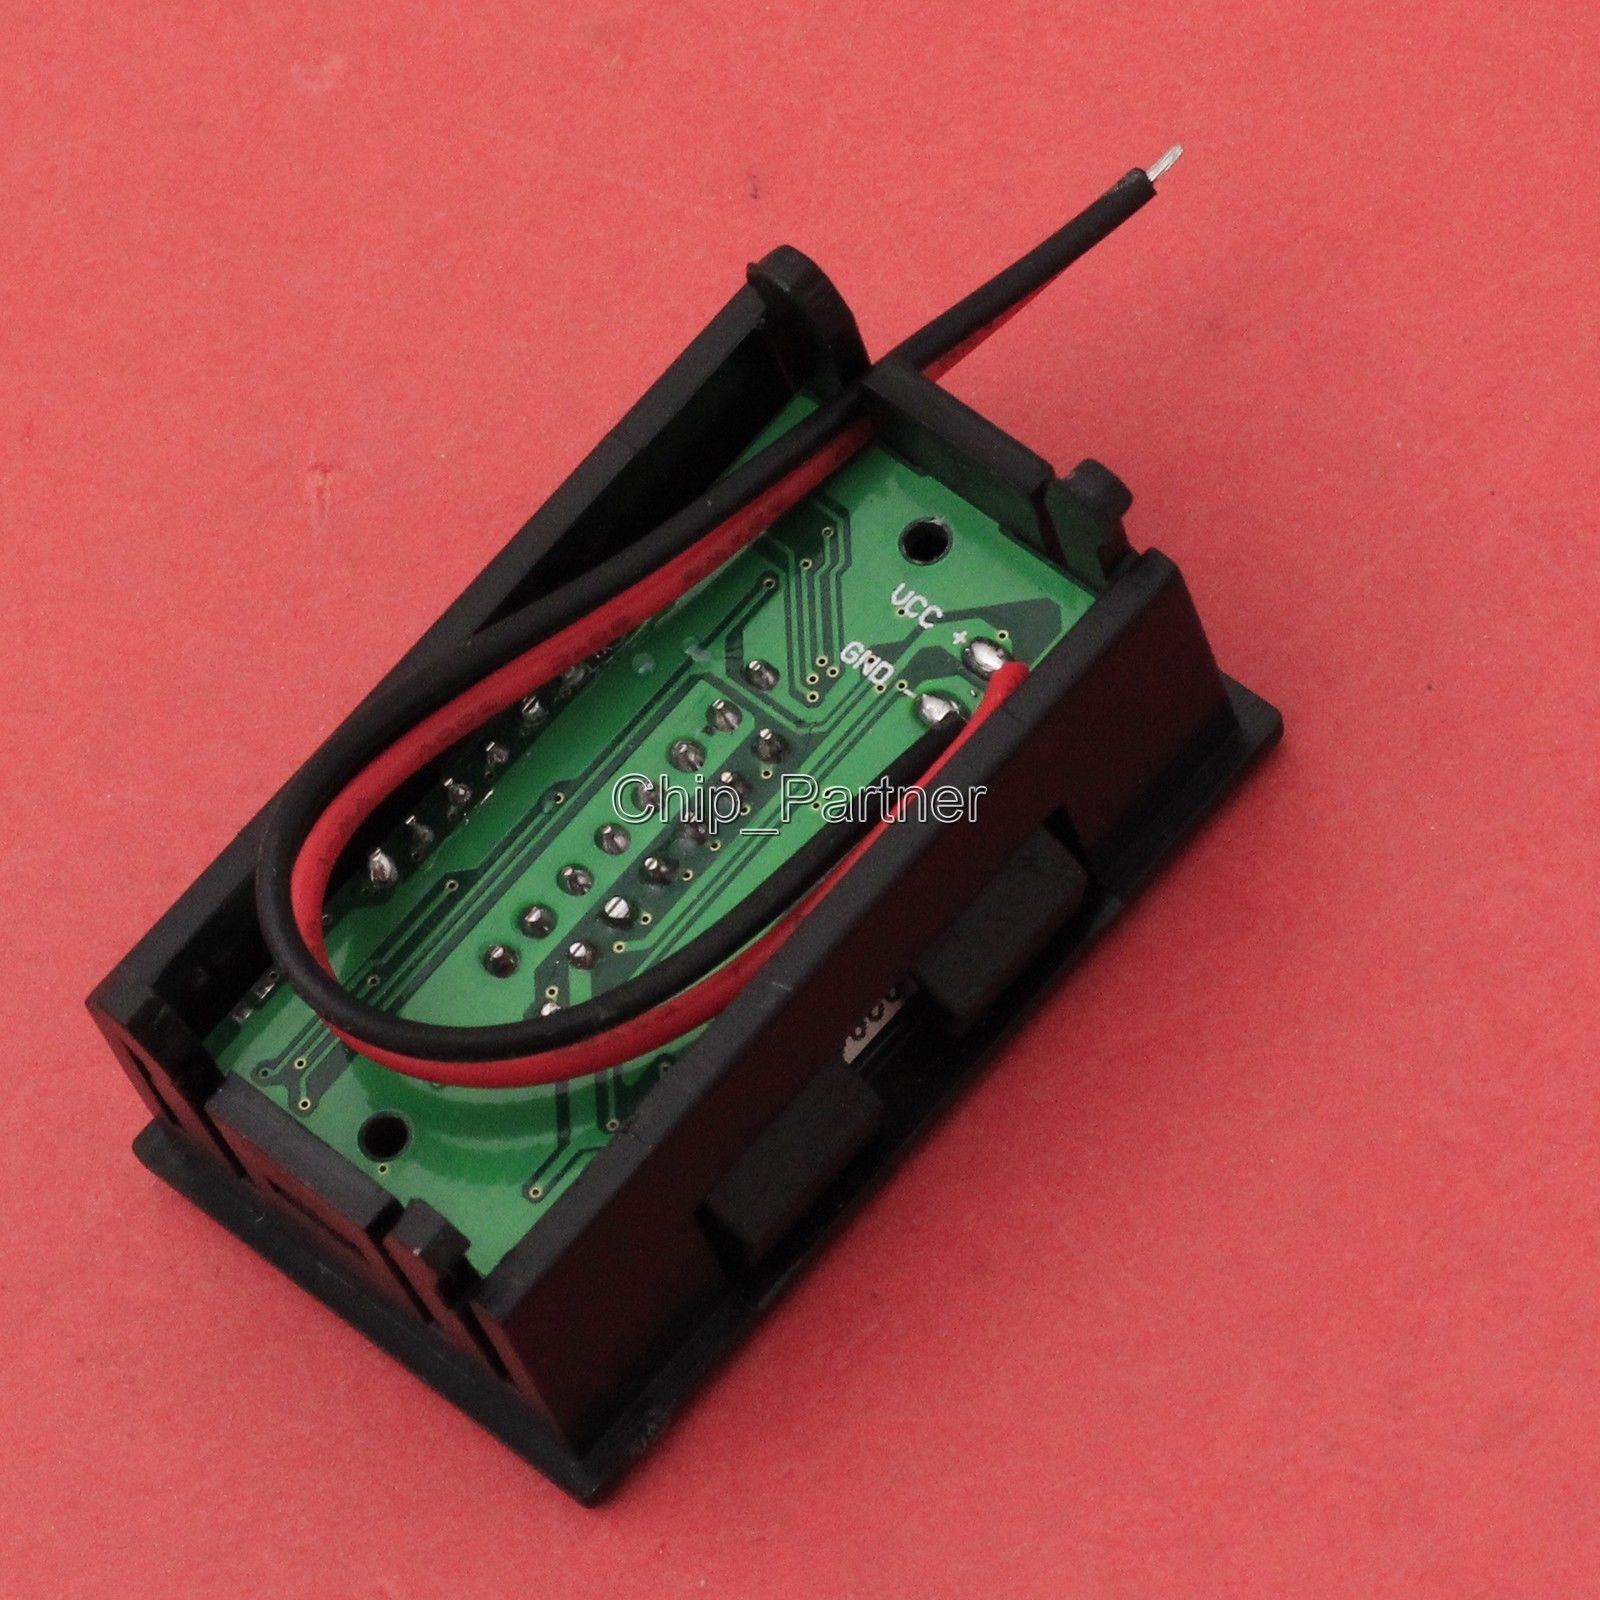 Led Voltmeter With Battery Status Indicator Review Wiring Diagram Of Diferend Type